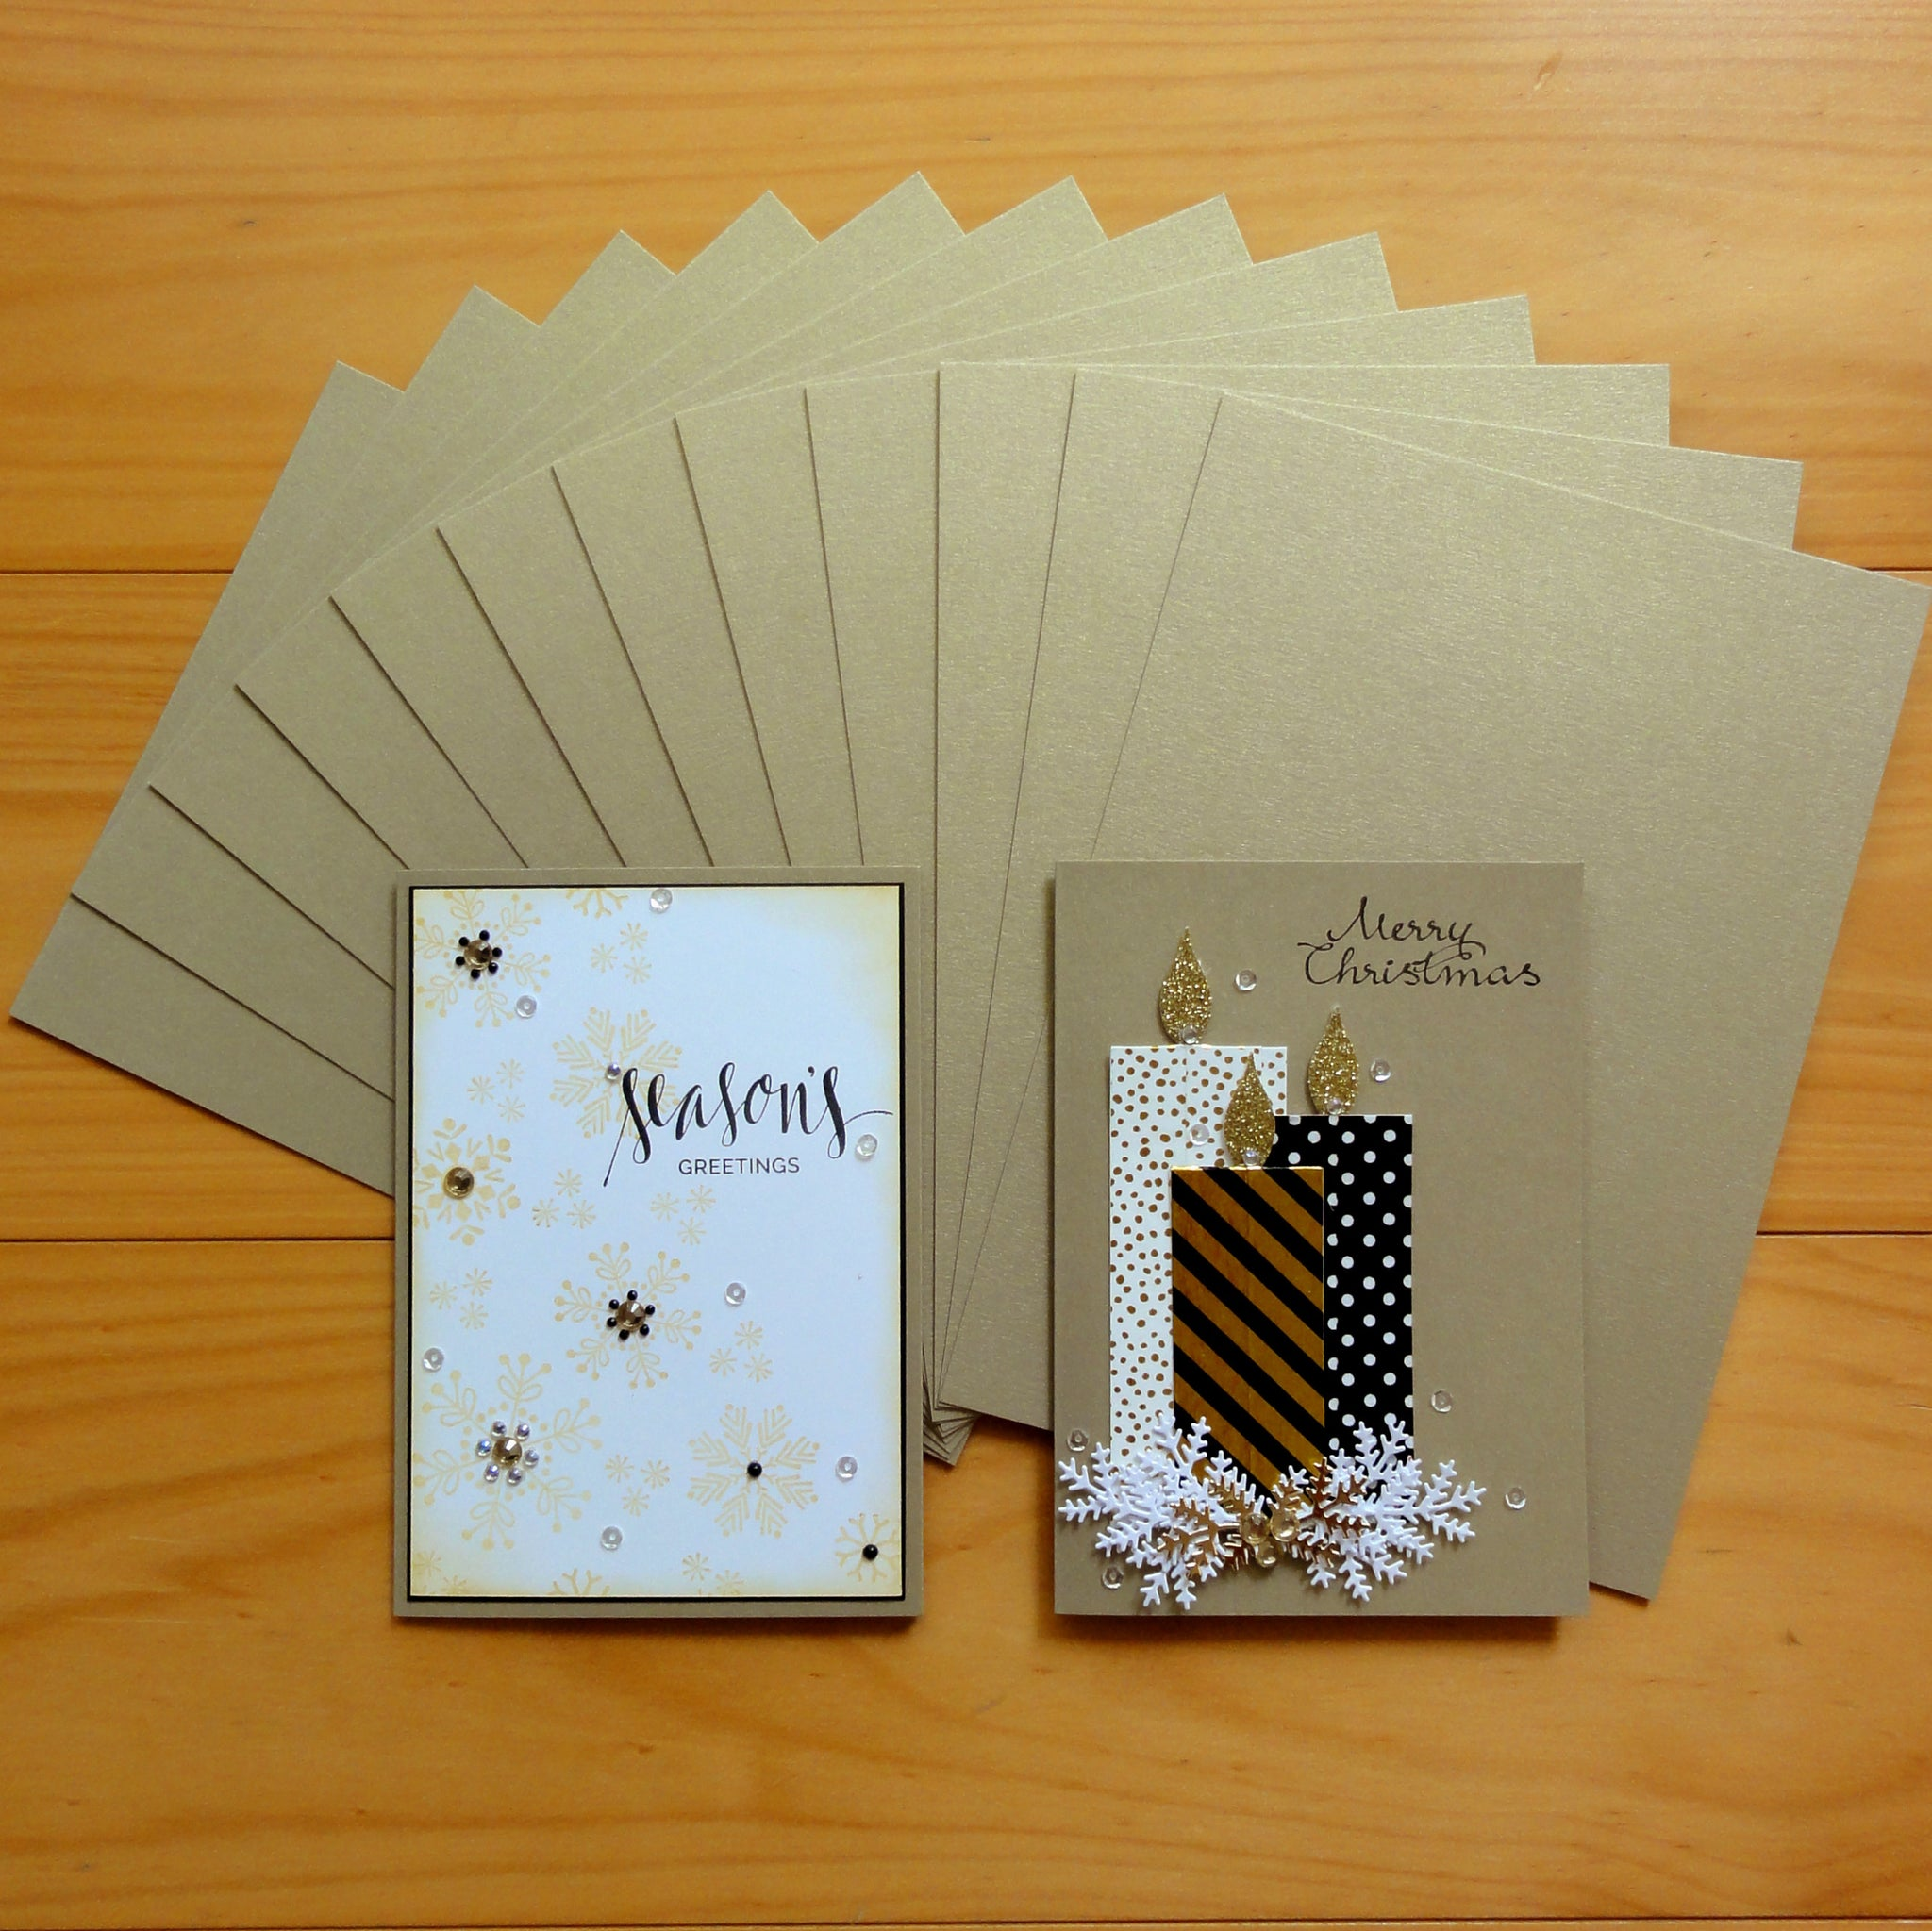 CARD A5 METALLIC SHIMMER GOLD LEAF 250 GSM 10 SHEETS CARDMAKING